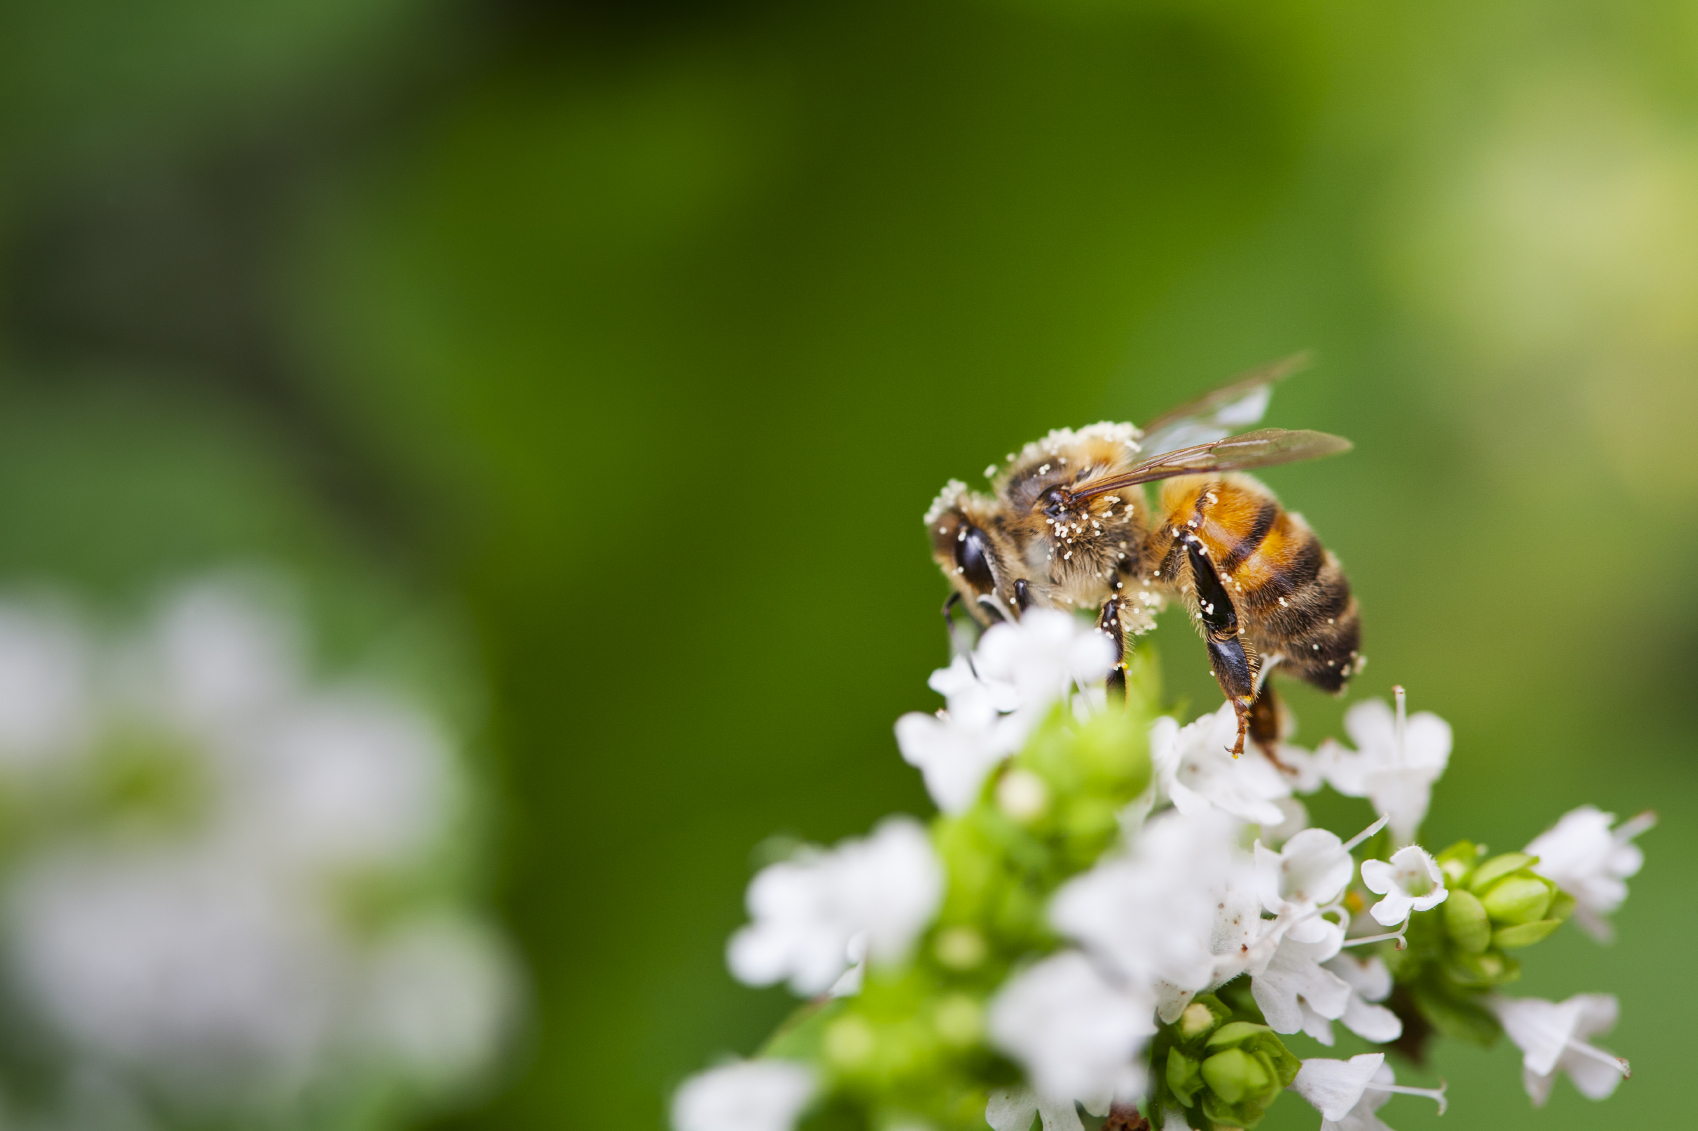 ede9eae4590 From Friends of the Earth   the Pesticide Research Institute  New Report  Highlights Strategies to Move Garden Industry in Bee-Safe Direction